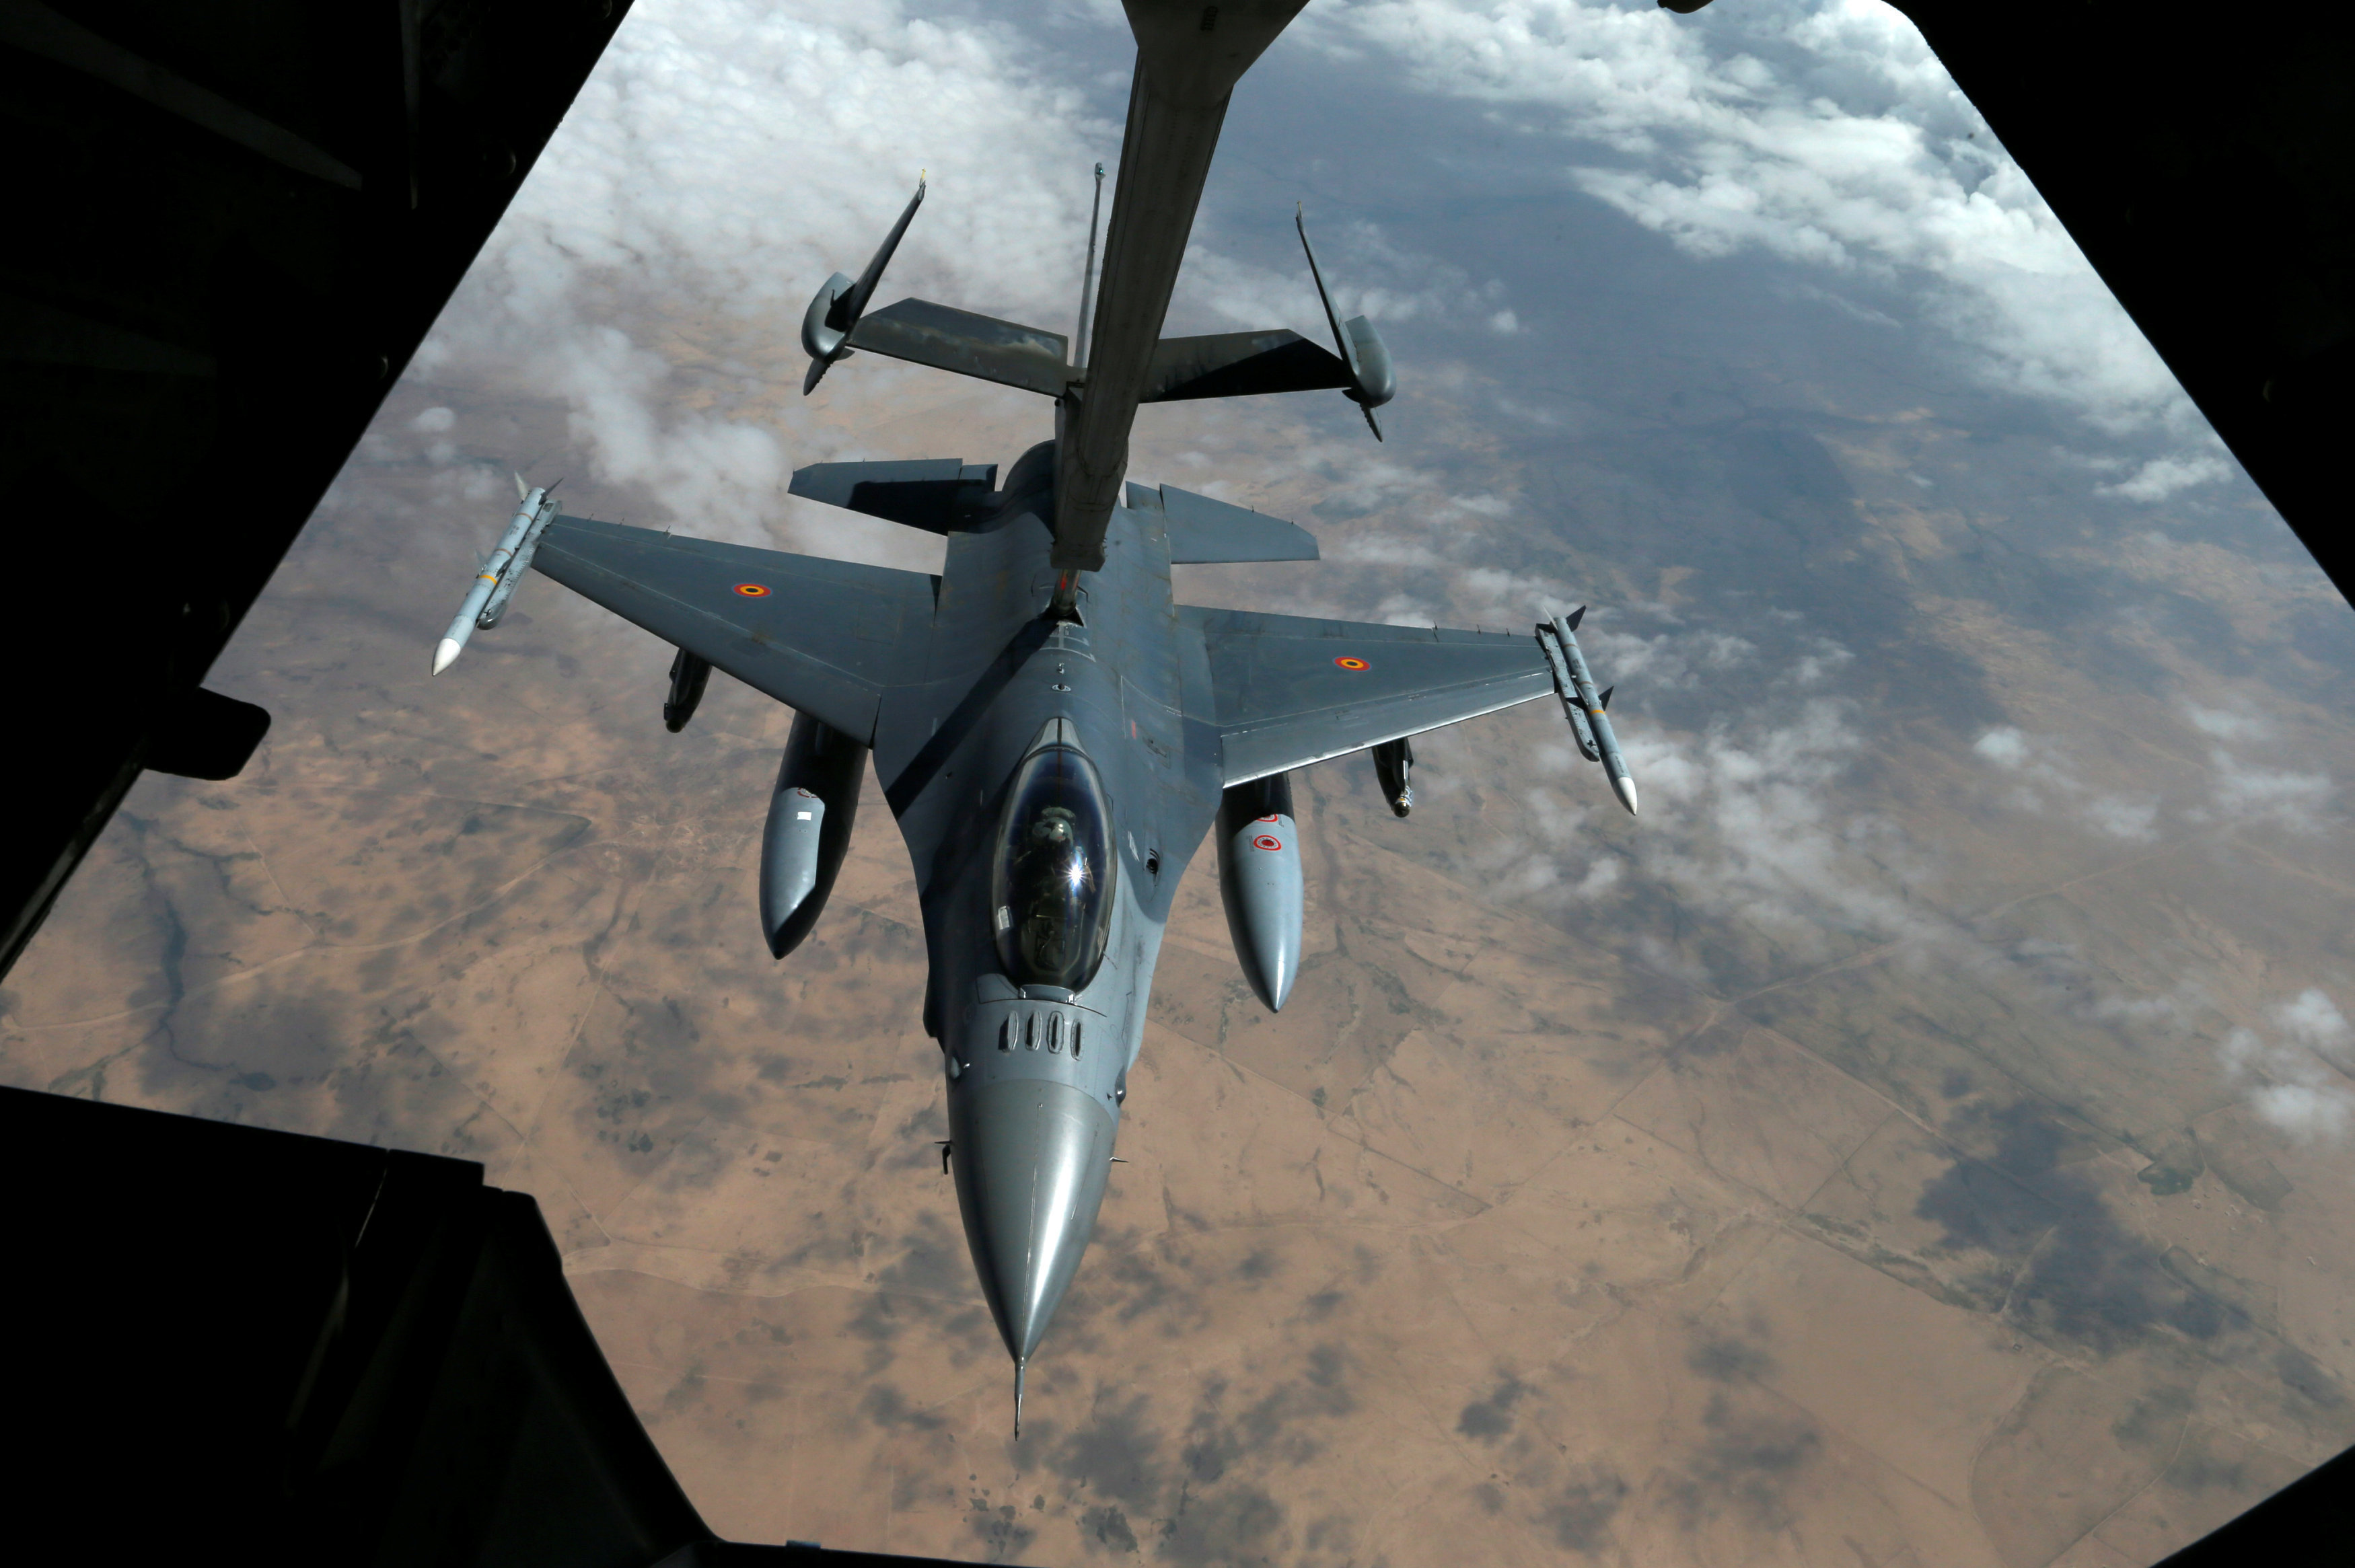 A Belgian Air Force F-16 receives fuel from a fuel boom suspended from a US Air Force KC-10 Extender during mid-air refueling support to Operation Inherent Resolve over Iraq and Syria air space, March 15, 2017